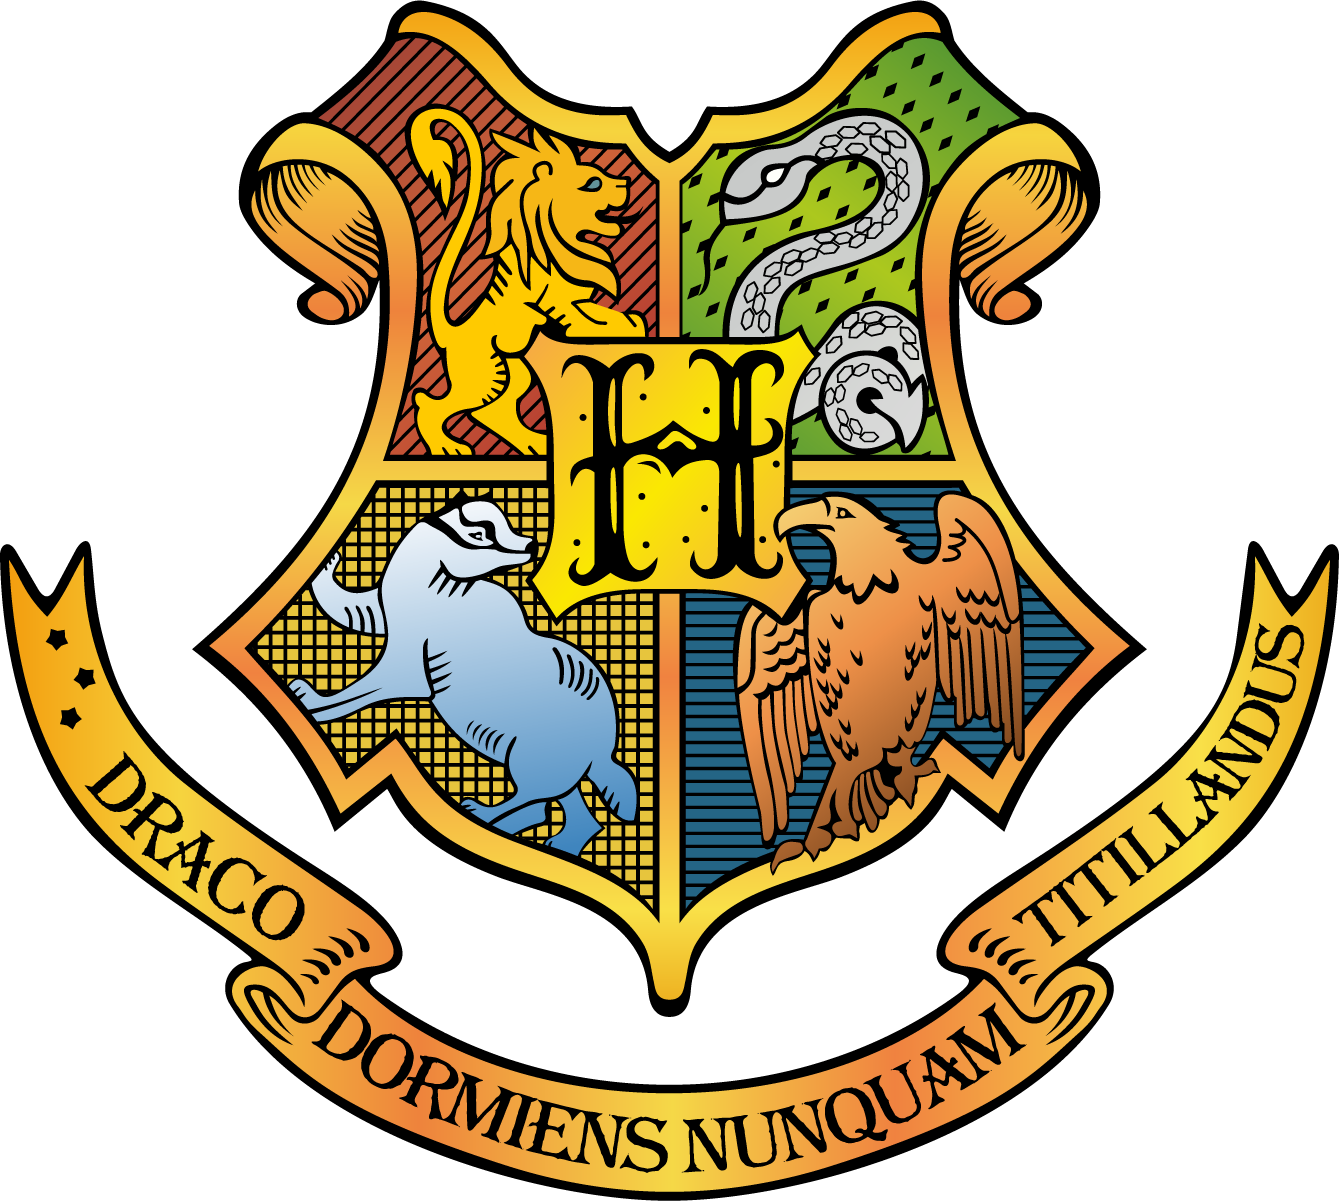 Slytherin Clipart, Gryffindor Clipart, Ravenclaw Clipart ...